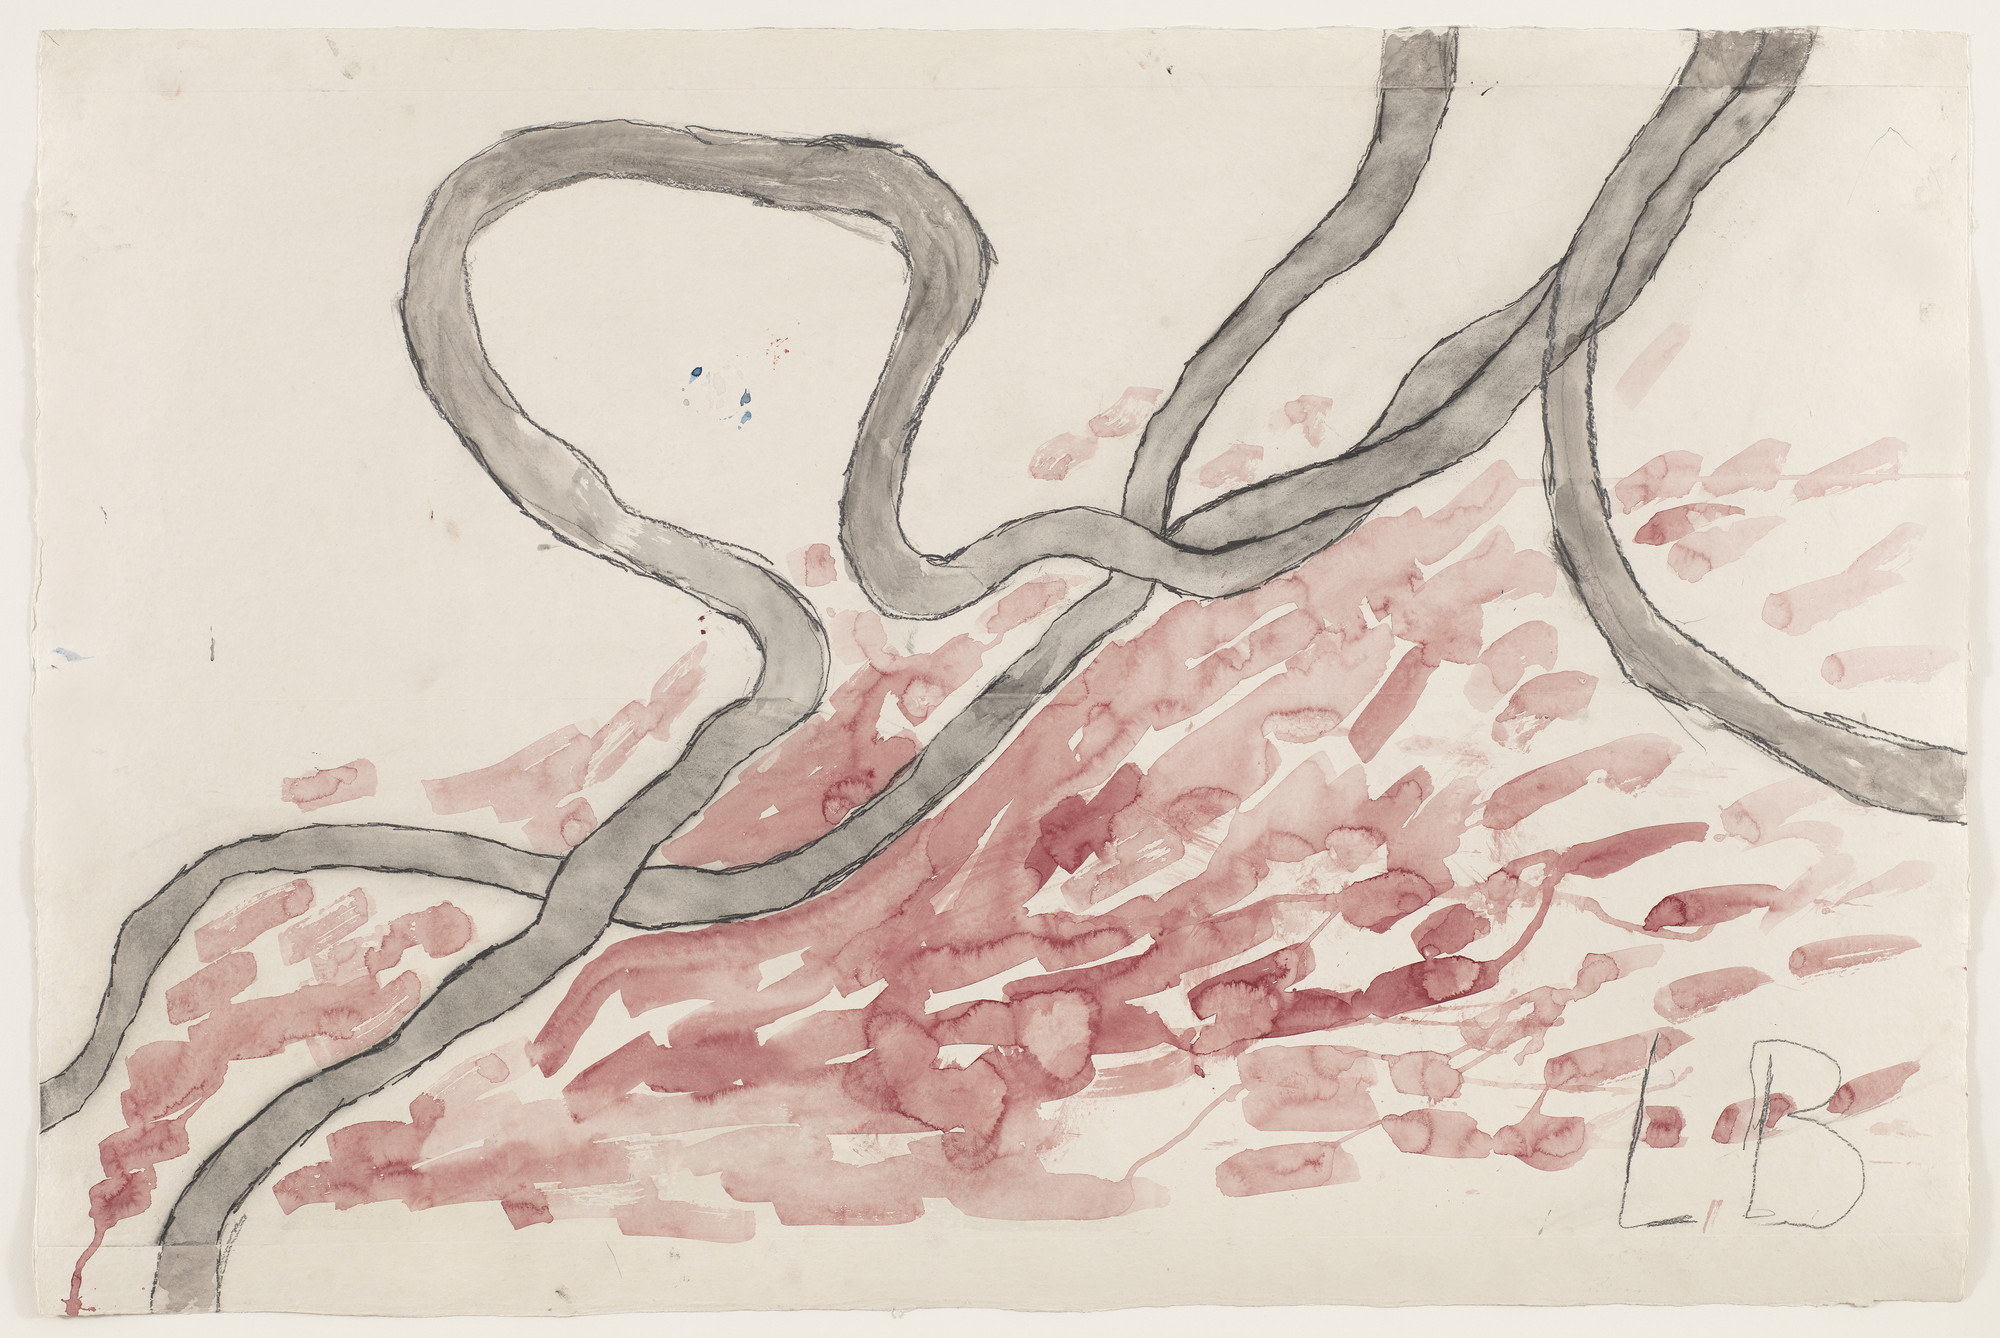 Louise Bourgeois. Untitled, no. 4 of 14, from À l'Infini (set 1). 2008